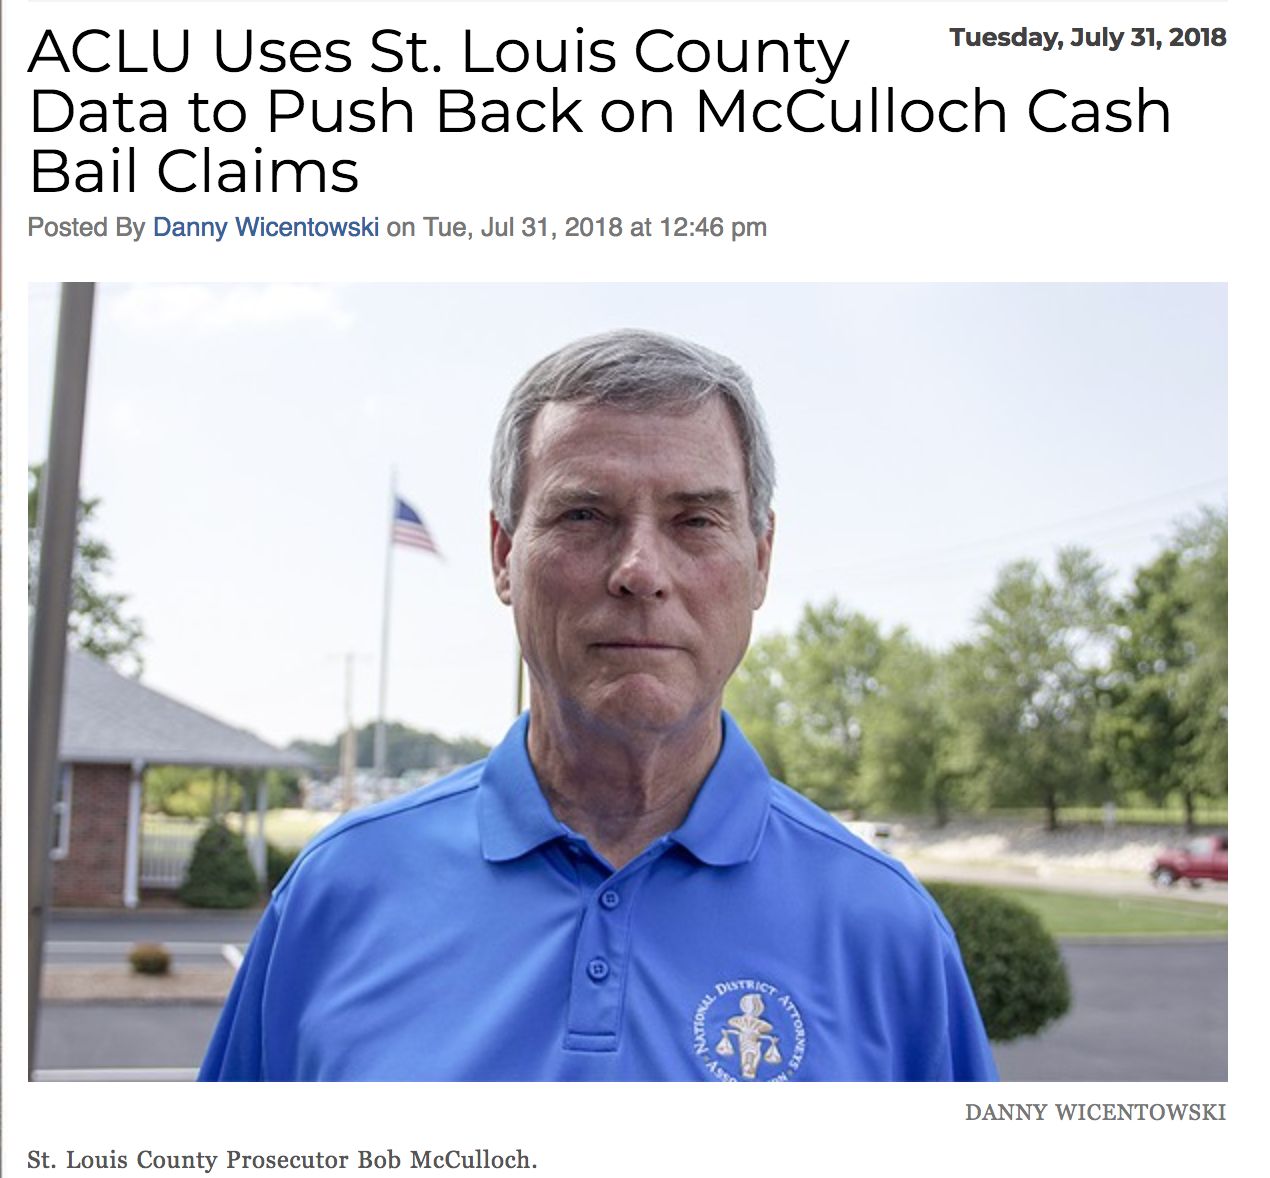 The Bail trap - In 2017, in St. Louis County nearly 1,000 people spent time in pre-trial detention on misdemeanor charges because they couldn't afford to post bail. The cash bail system criminalizes poverty and the long-term damage bail inflicts on members of our community extends beyond pre-trial detention. The system separates people from their families and jeopardizes work and housing. Prosecutors have the power to eliminate cash bail, and it is imperative to do so. Read the article here.